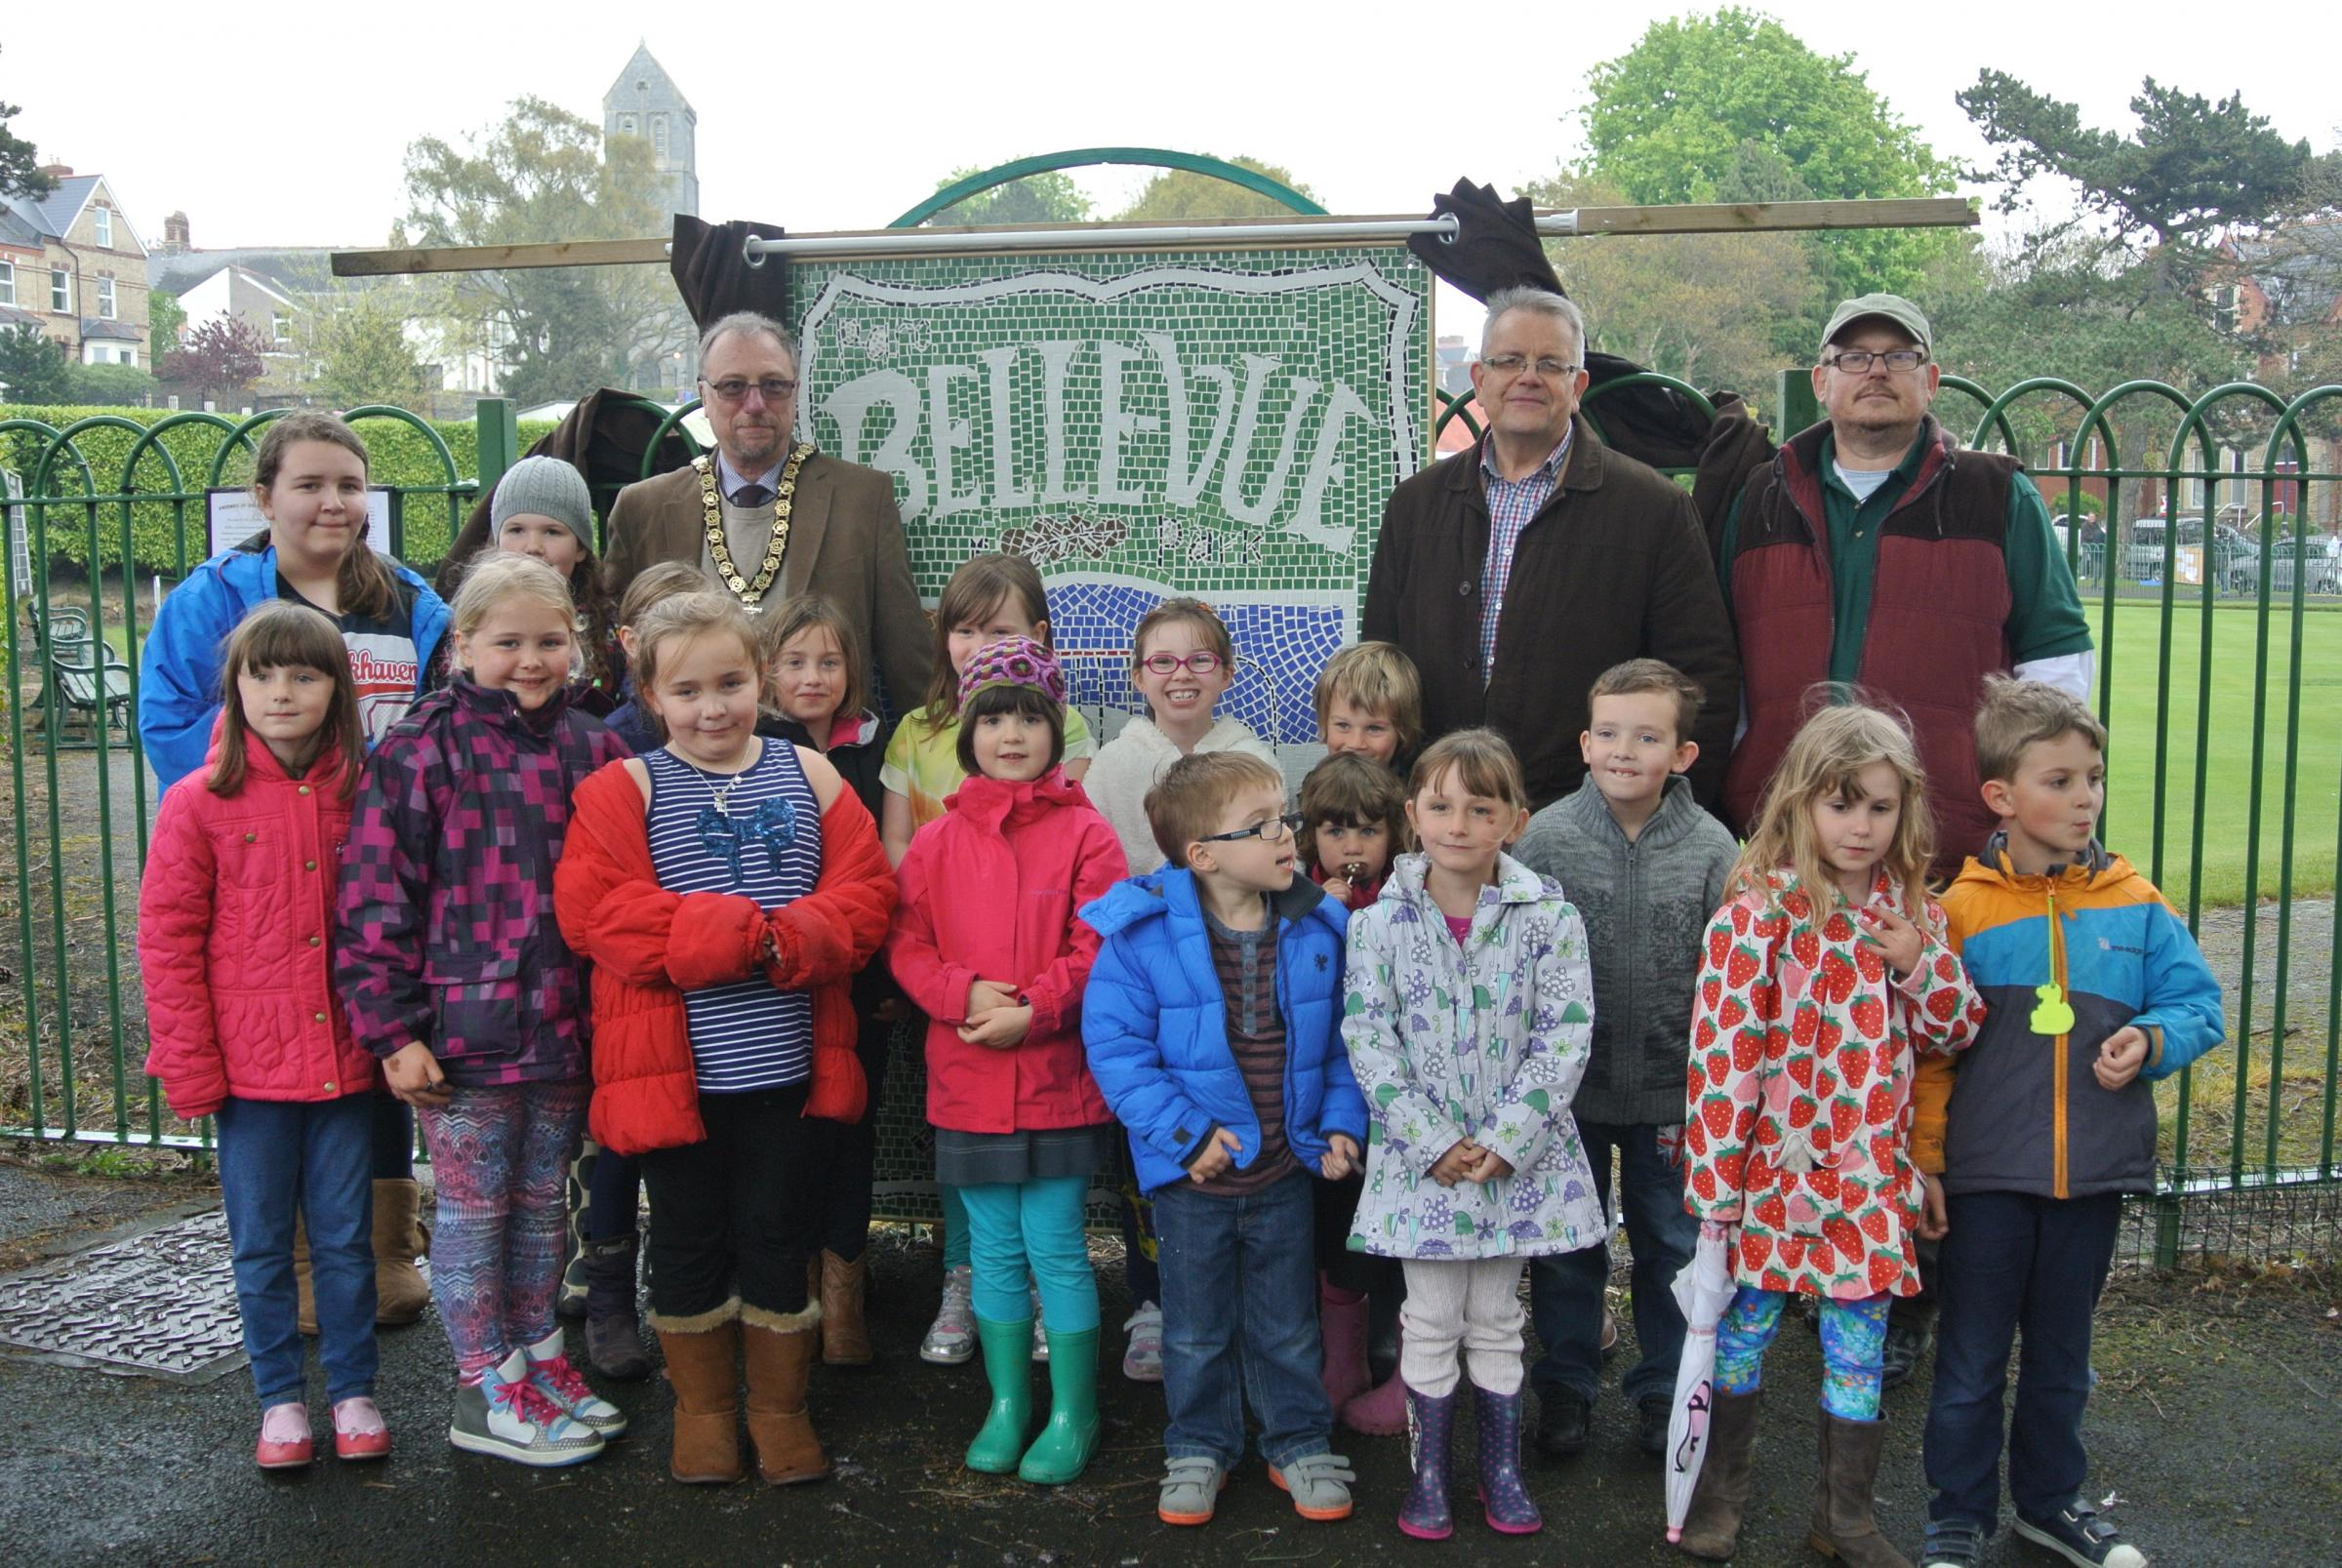 Belle Vue Park centenary mosaic unveiled at Easter Festival